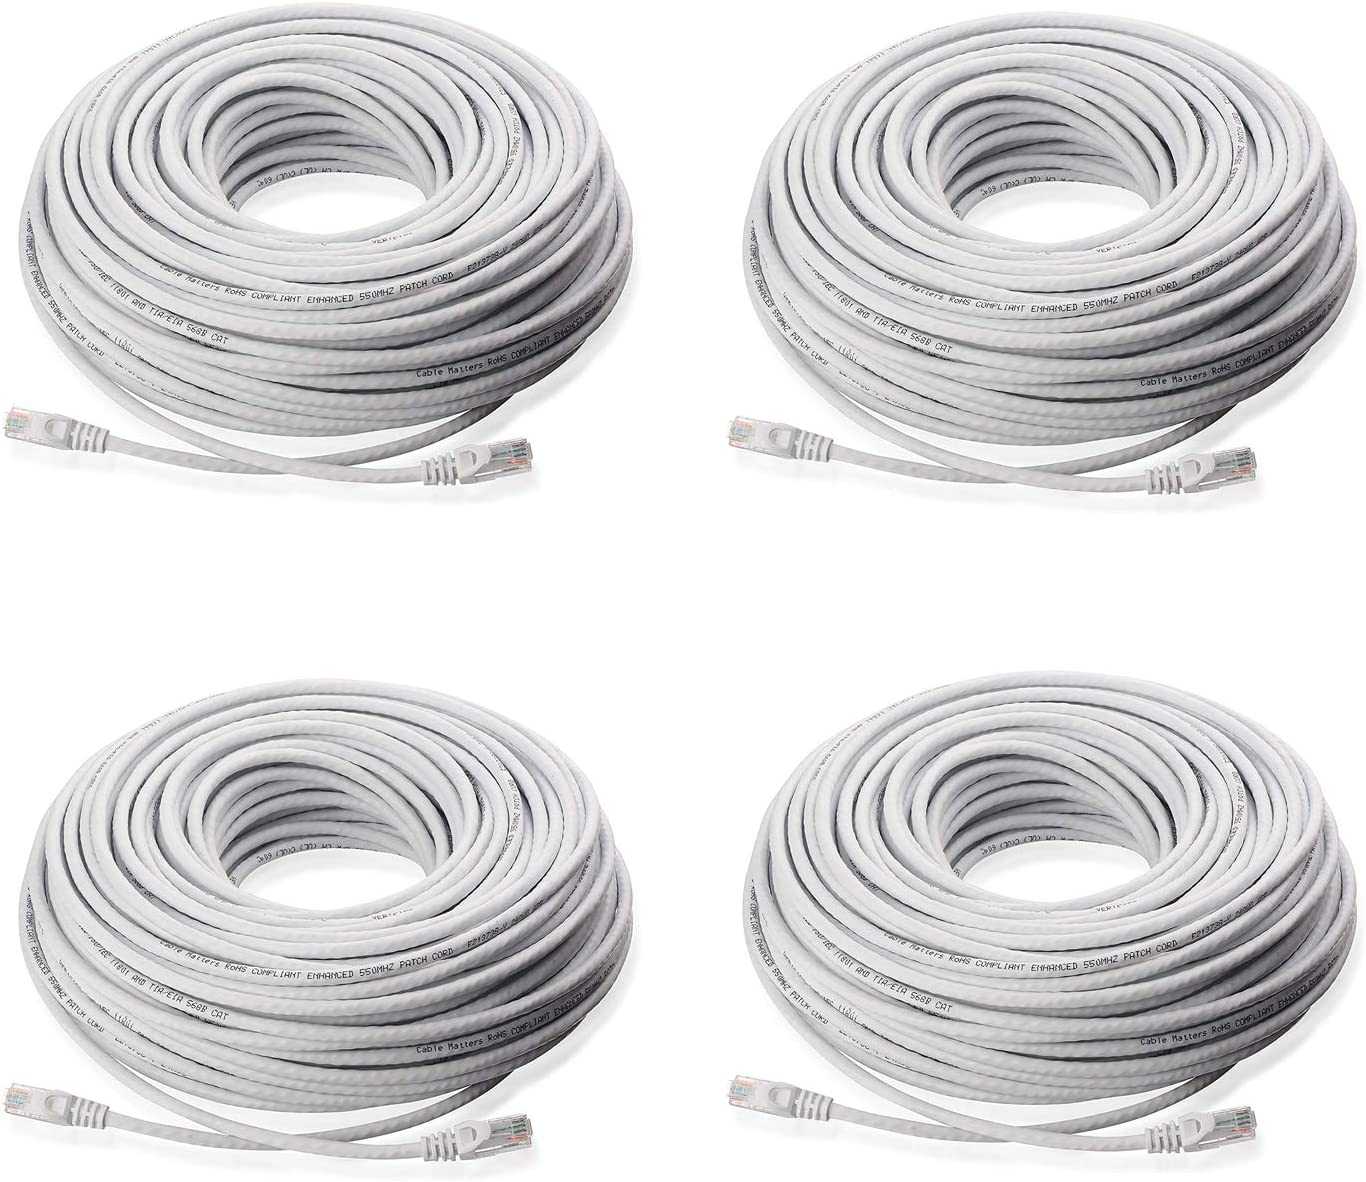 RJ45 Computer Network Internet Wire PoE Switch Cord Lknewtrend 4 100FT Feet CAT5 Cat5e Ethernet Patch Cable 4 Pack, 100 FT